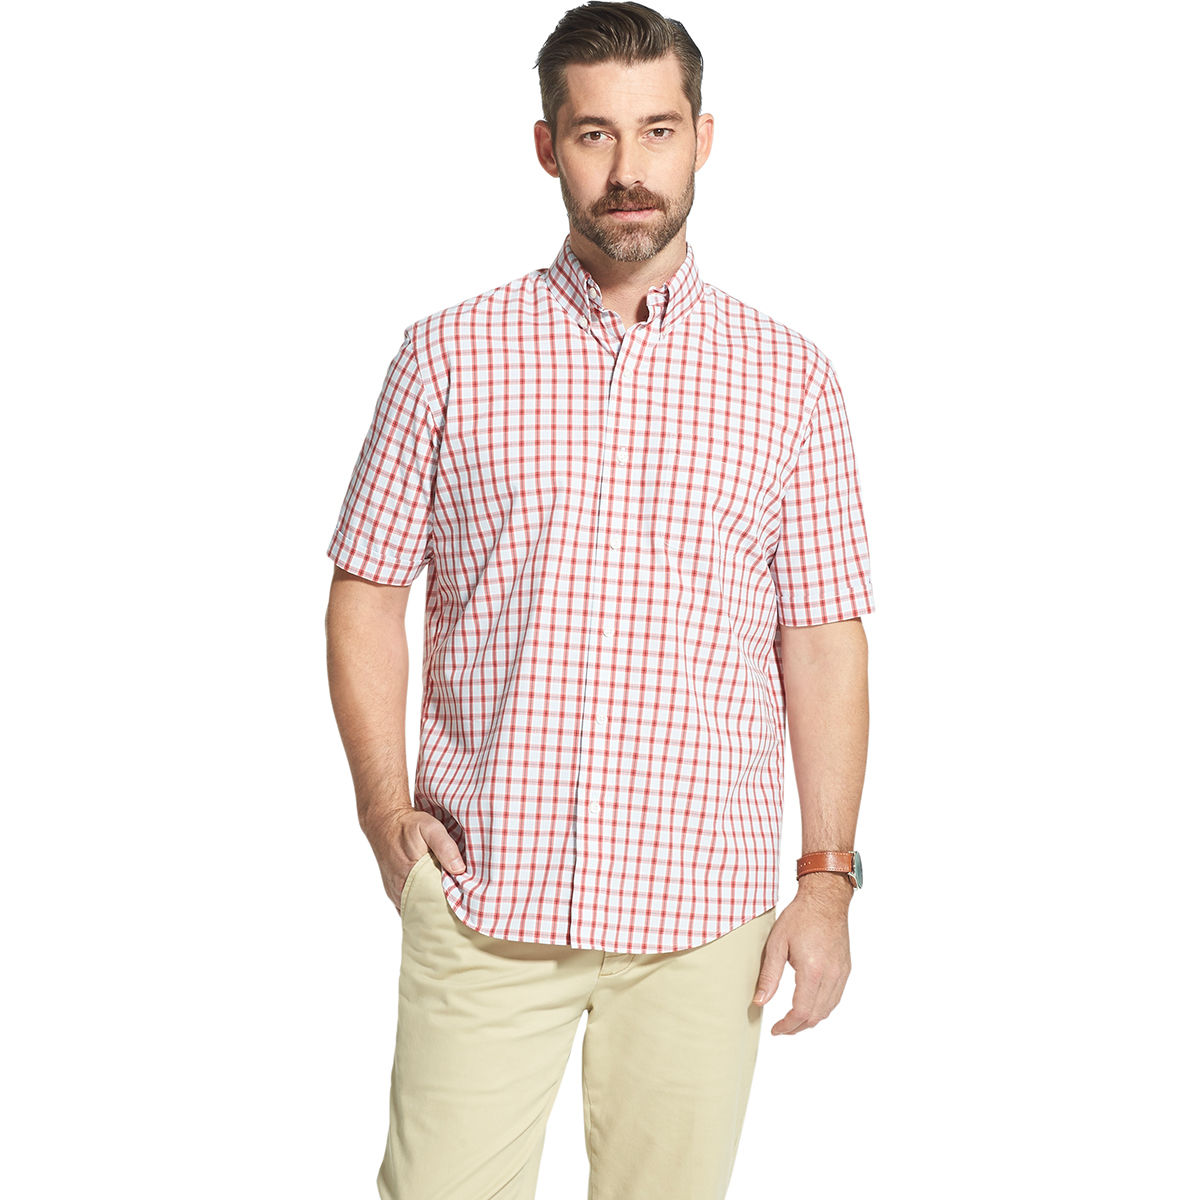 Arrow Men's Hamilton Short-Sleeve Button Down Shirt - Red, XL